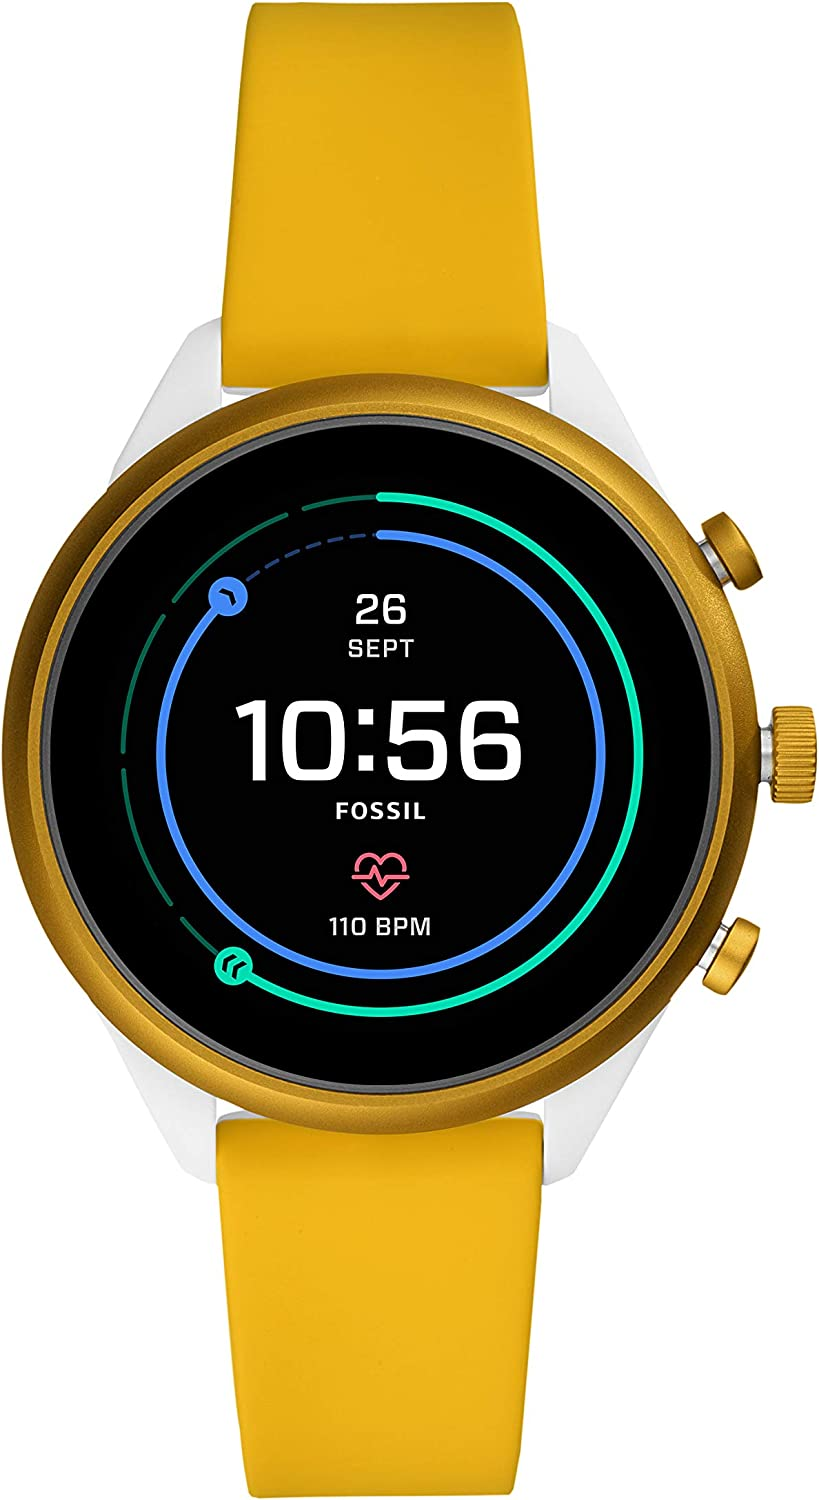 Fossil Womens Sport Metal and Silicone Touchscreen Smartwatch with Heart Rate, GPS, NFC, and Smartphone Notifications